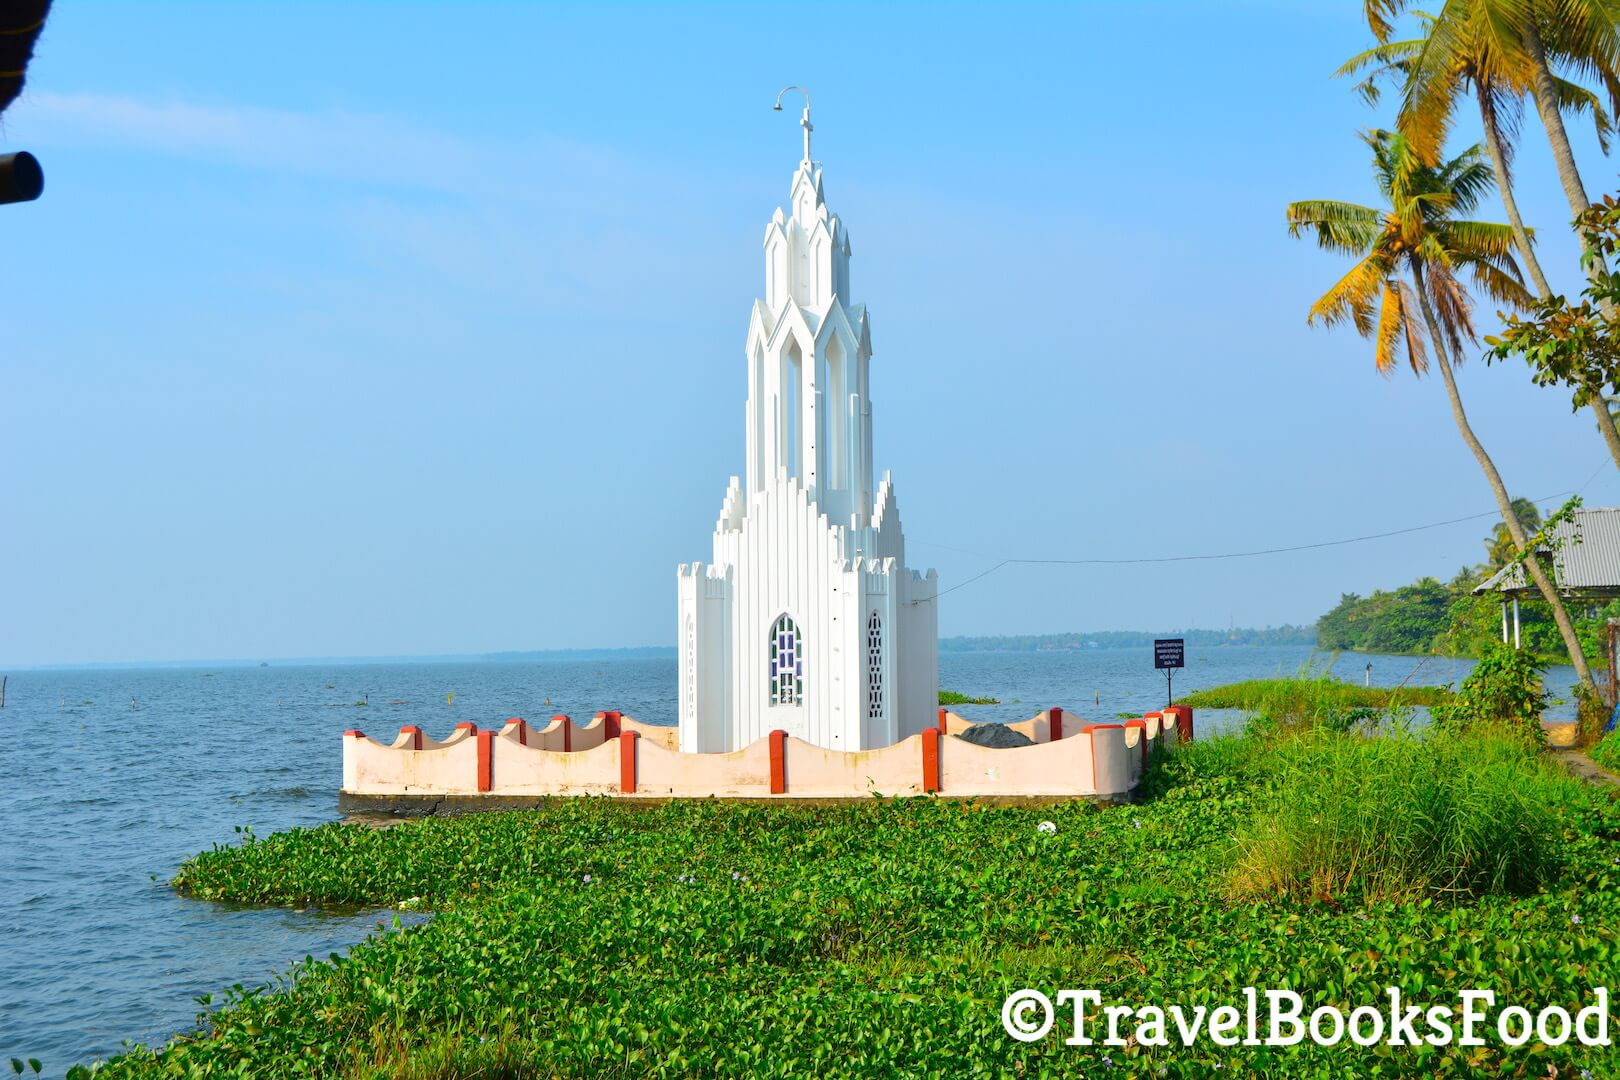 Photo of a White Church in Kummarakom, Kerala, India surrounded by water on all sides